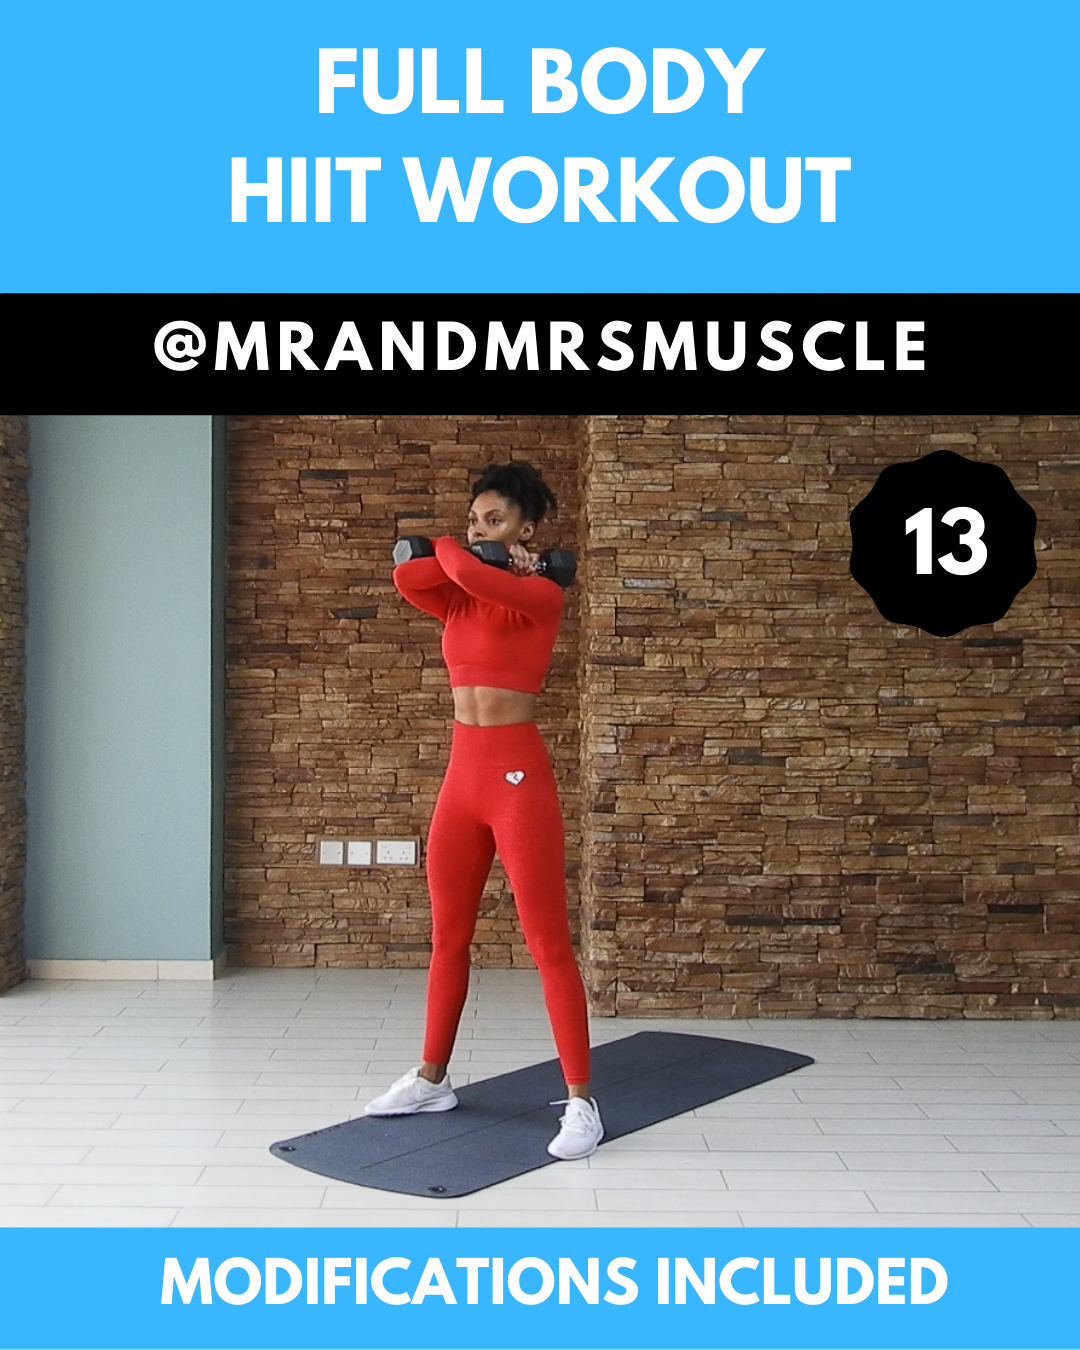 Full Body Workout - HIIT -  Full body HIIT exercise with weights #fullbodyworkouts #workoutroutine #...